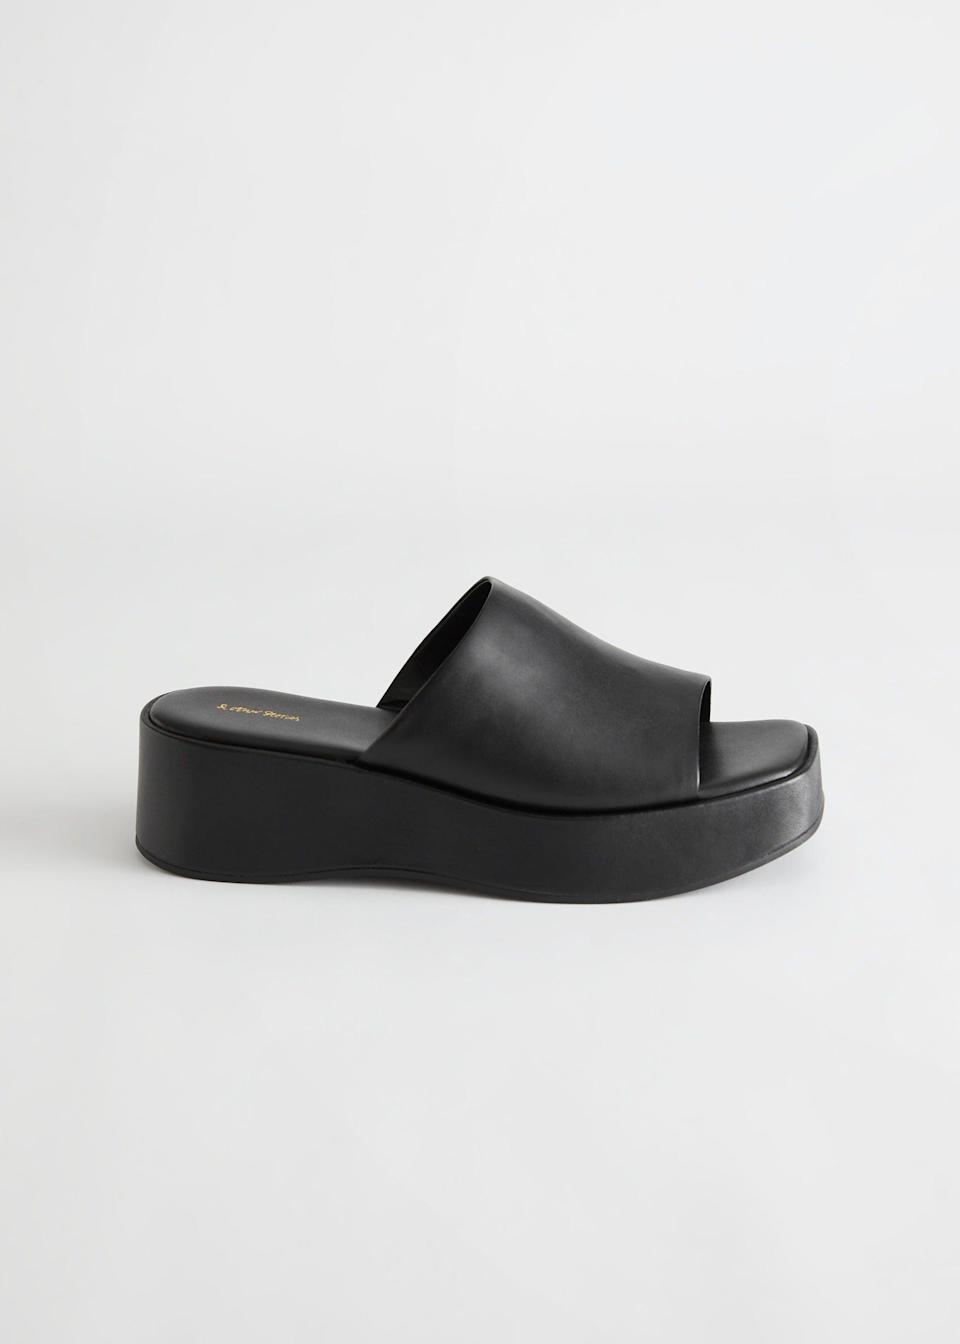 """<br><br><strong>& Other Stories</strong> Leather Platform Sandals, $, available at <a href=""""https://www.stories.com/en_gbp/shoes/heeled-sandals/product.leather-platform-sandals-black.0935221001.html"""" rel=""""nofollow noopener"""" target=""""_blank"""" data-ylk=""""slk:& Other Stories"""" class=""""link rapid-noclick-resp"""">& Other Stories</a>"""